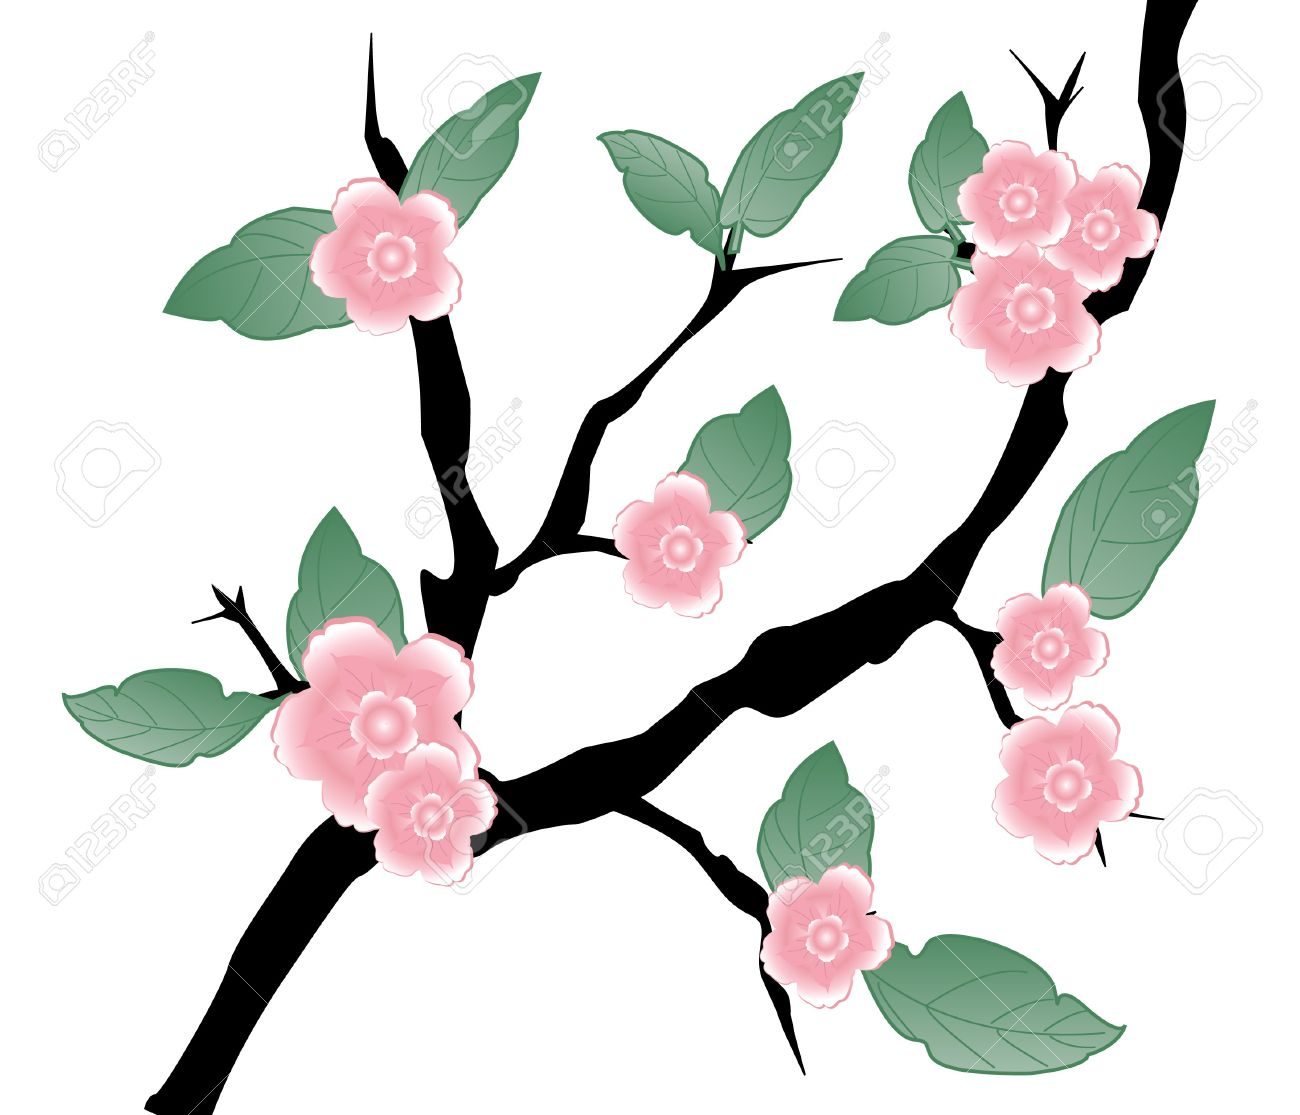 Prunus Blossom clipart #5, Download drawings